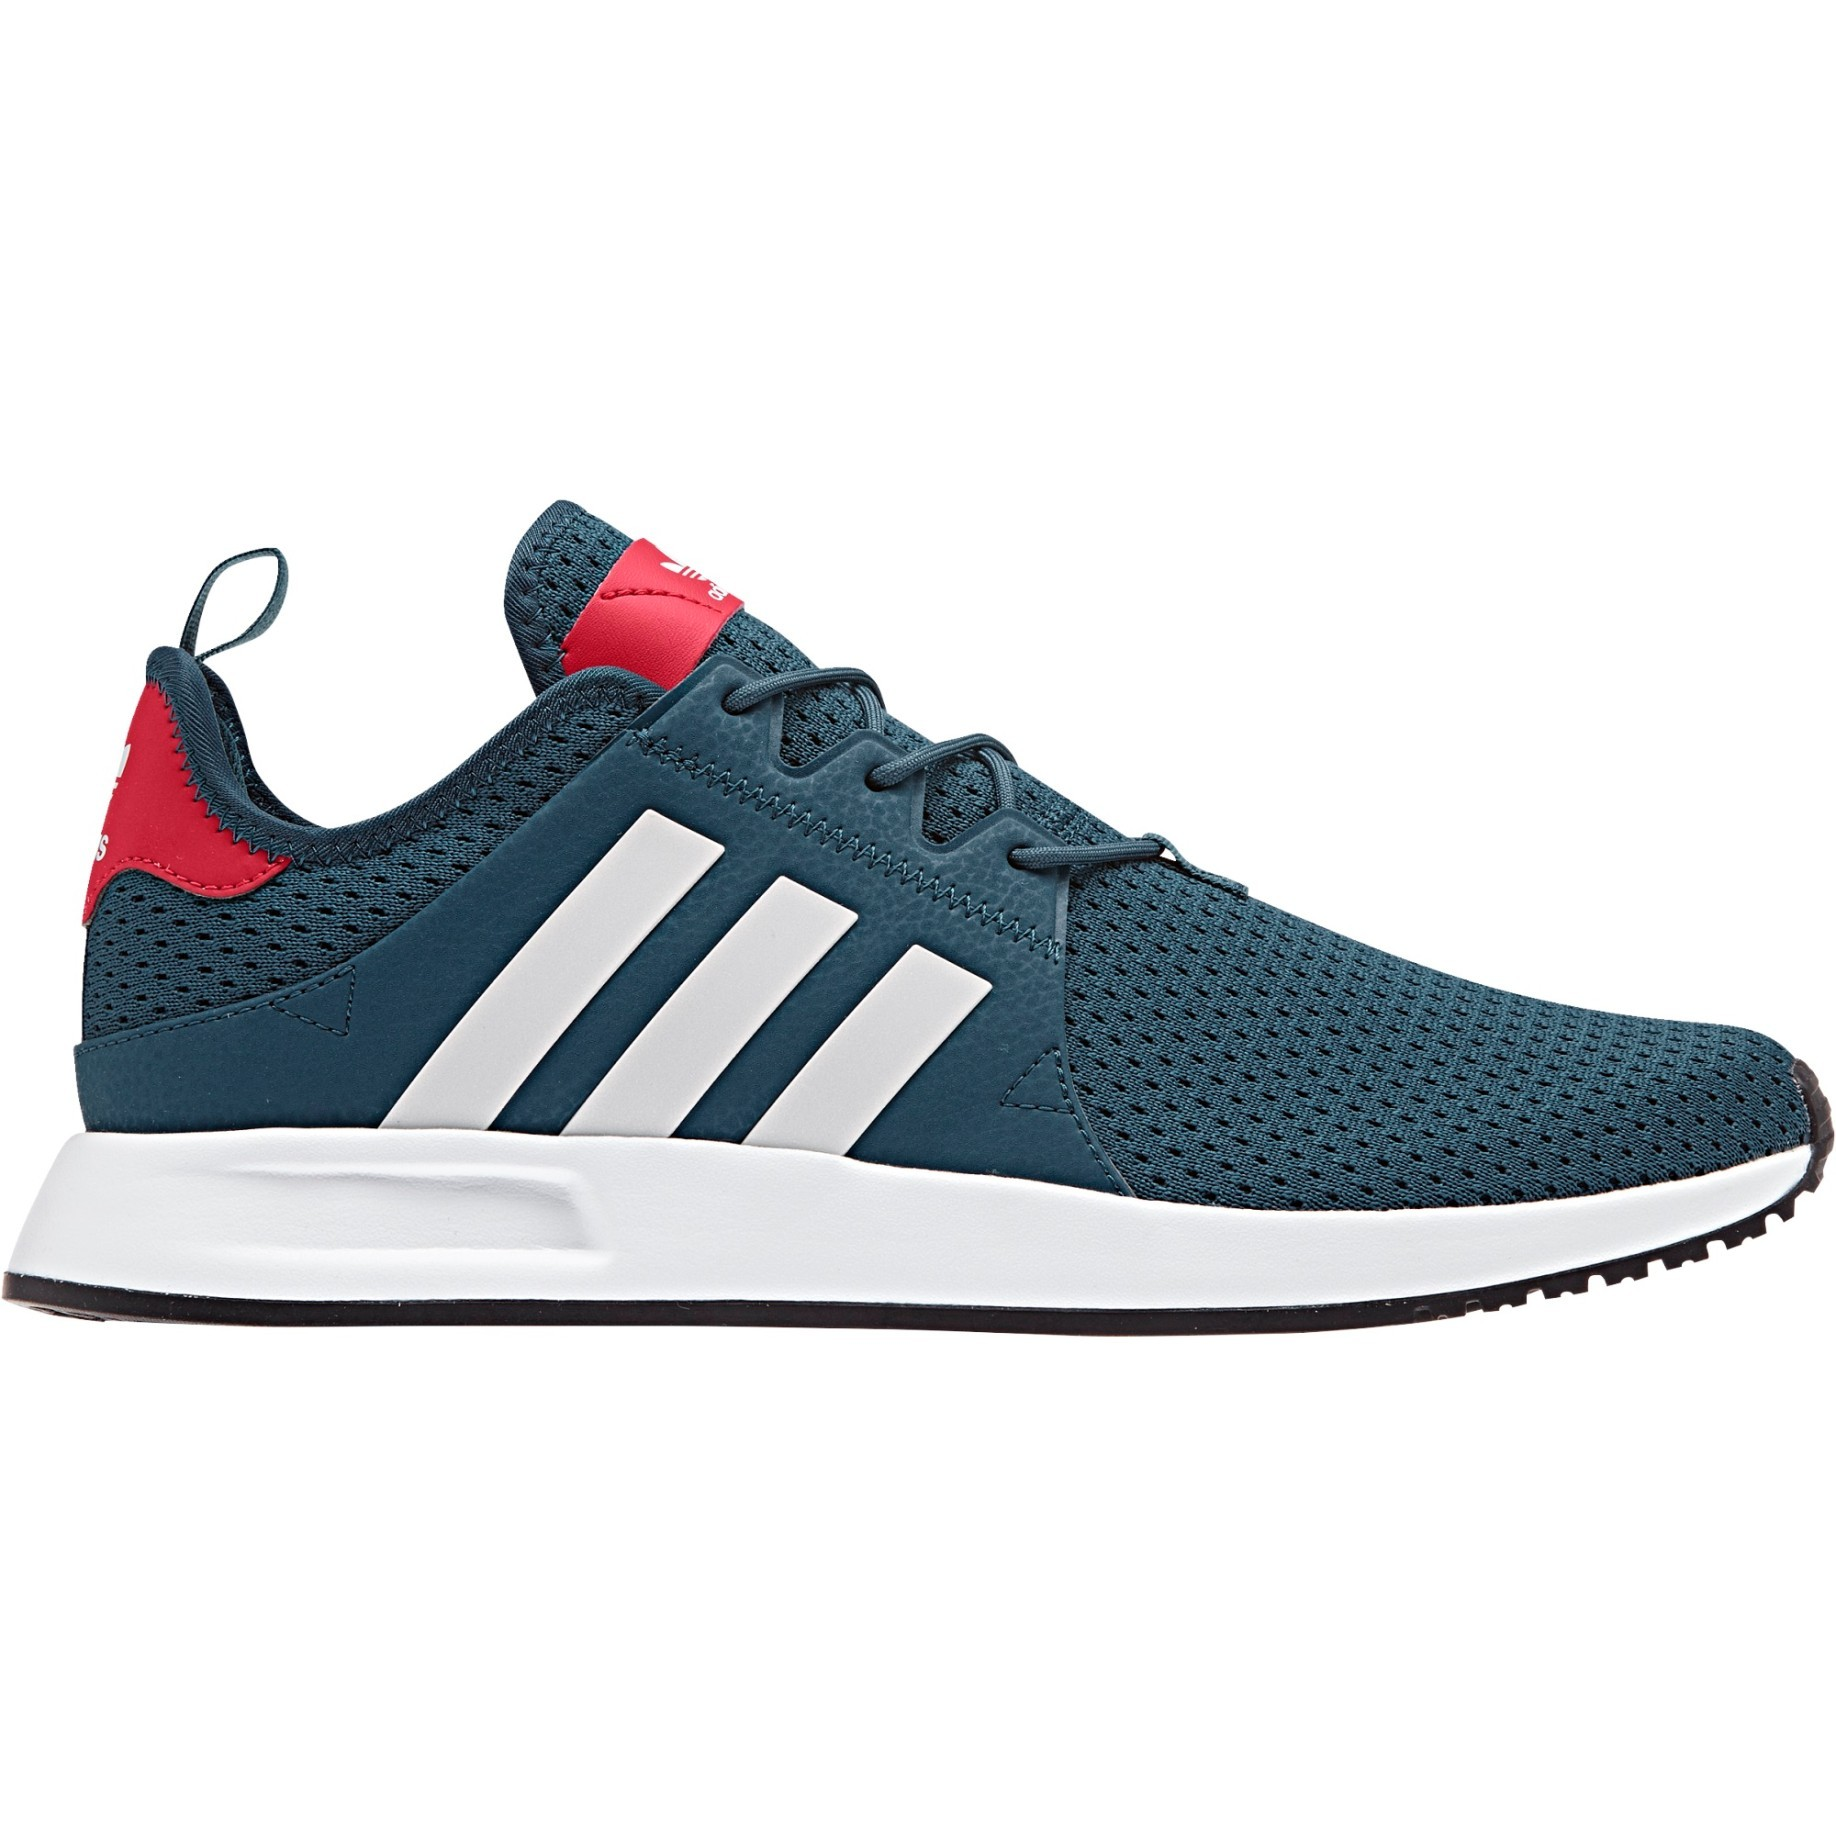 The shoe Man X PLR colore Blue White - Adidas Originals - SportIT.com d4f5a4388